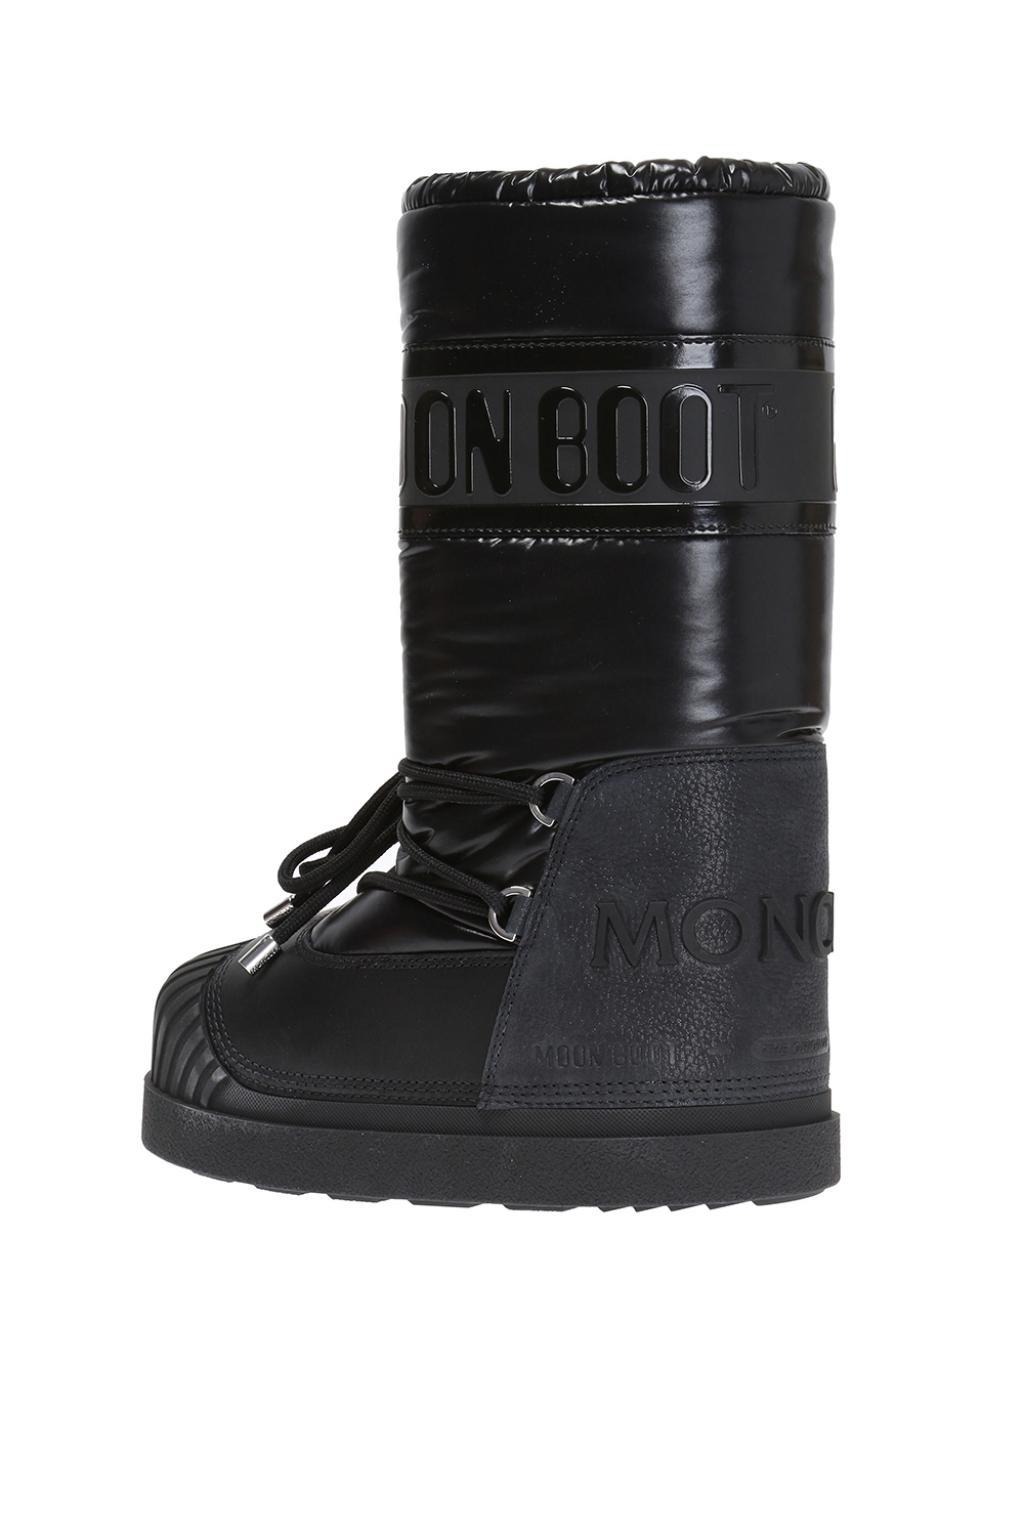 c6269f854bcd Moncler X Moon Boot in Black - Save 45% - Lyst